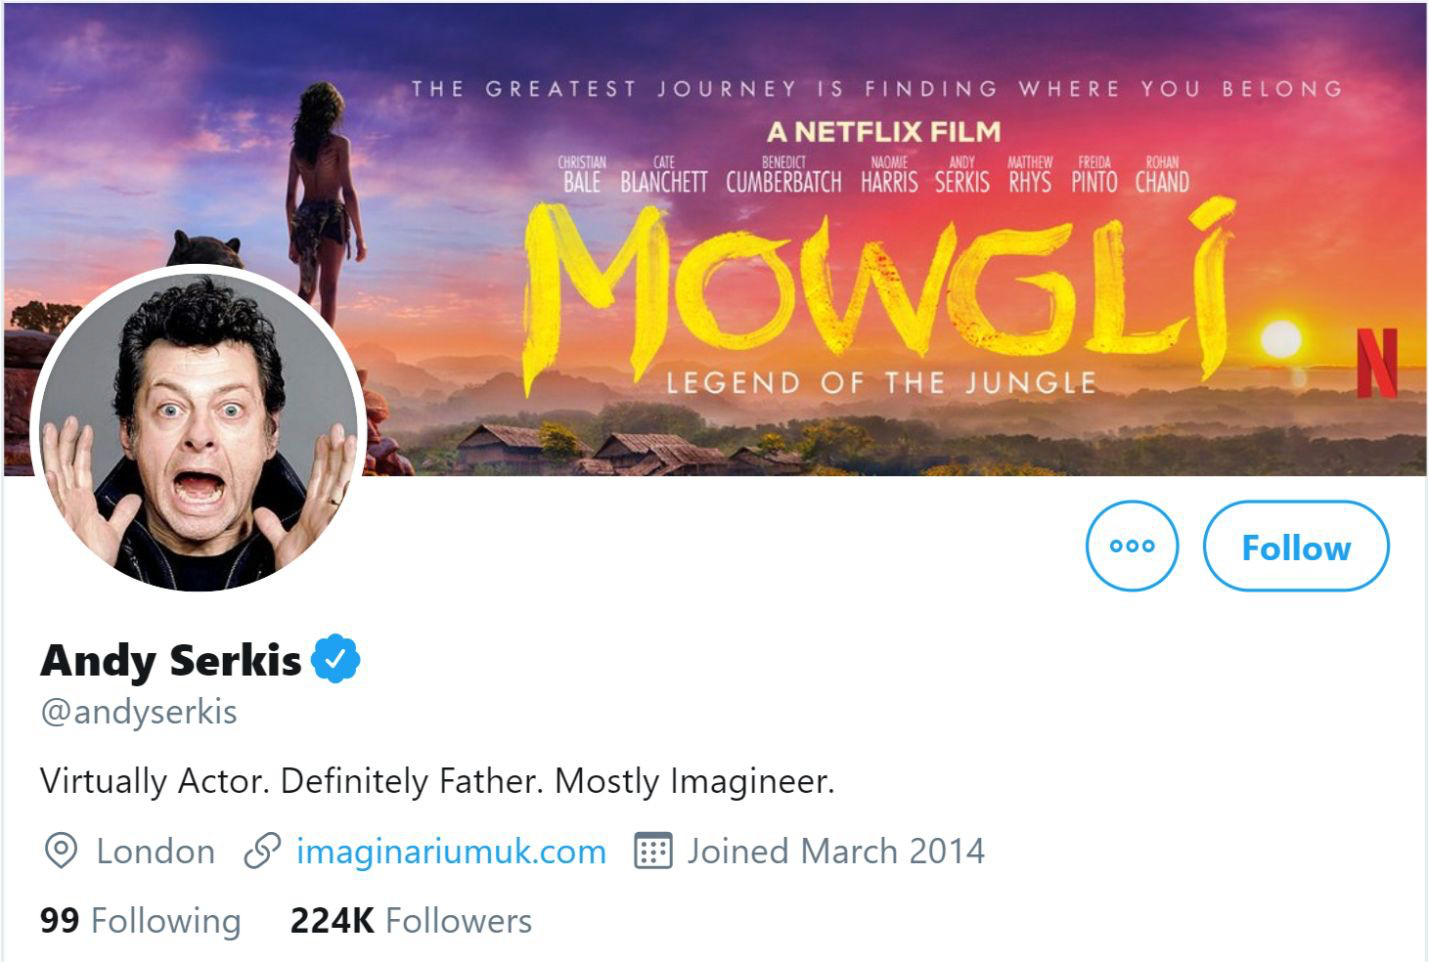 andy serkis twitter profile